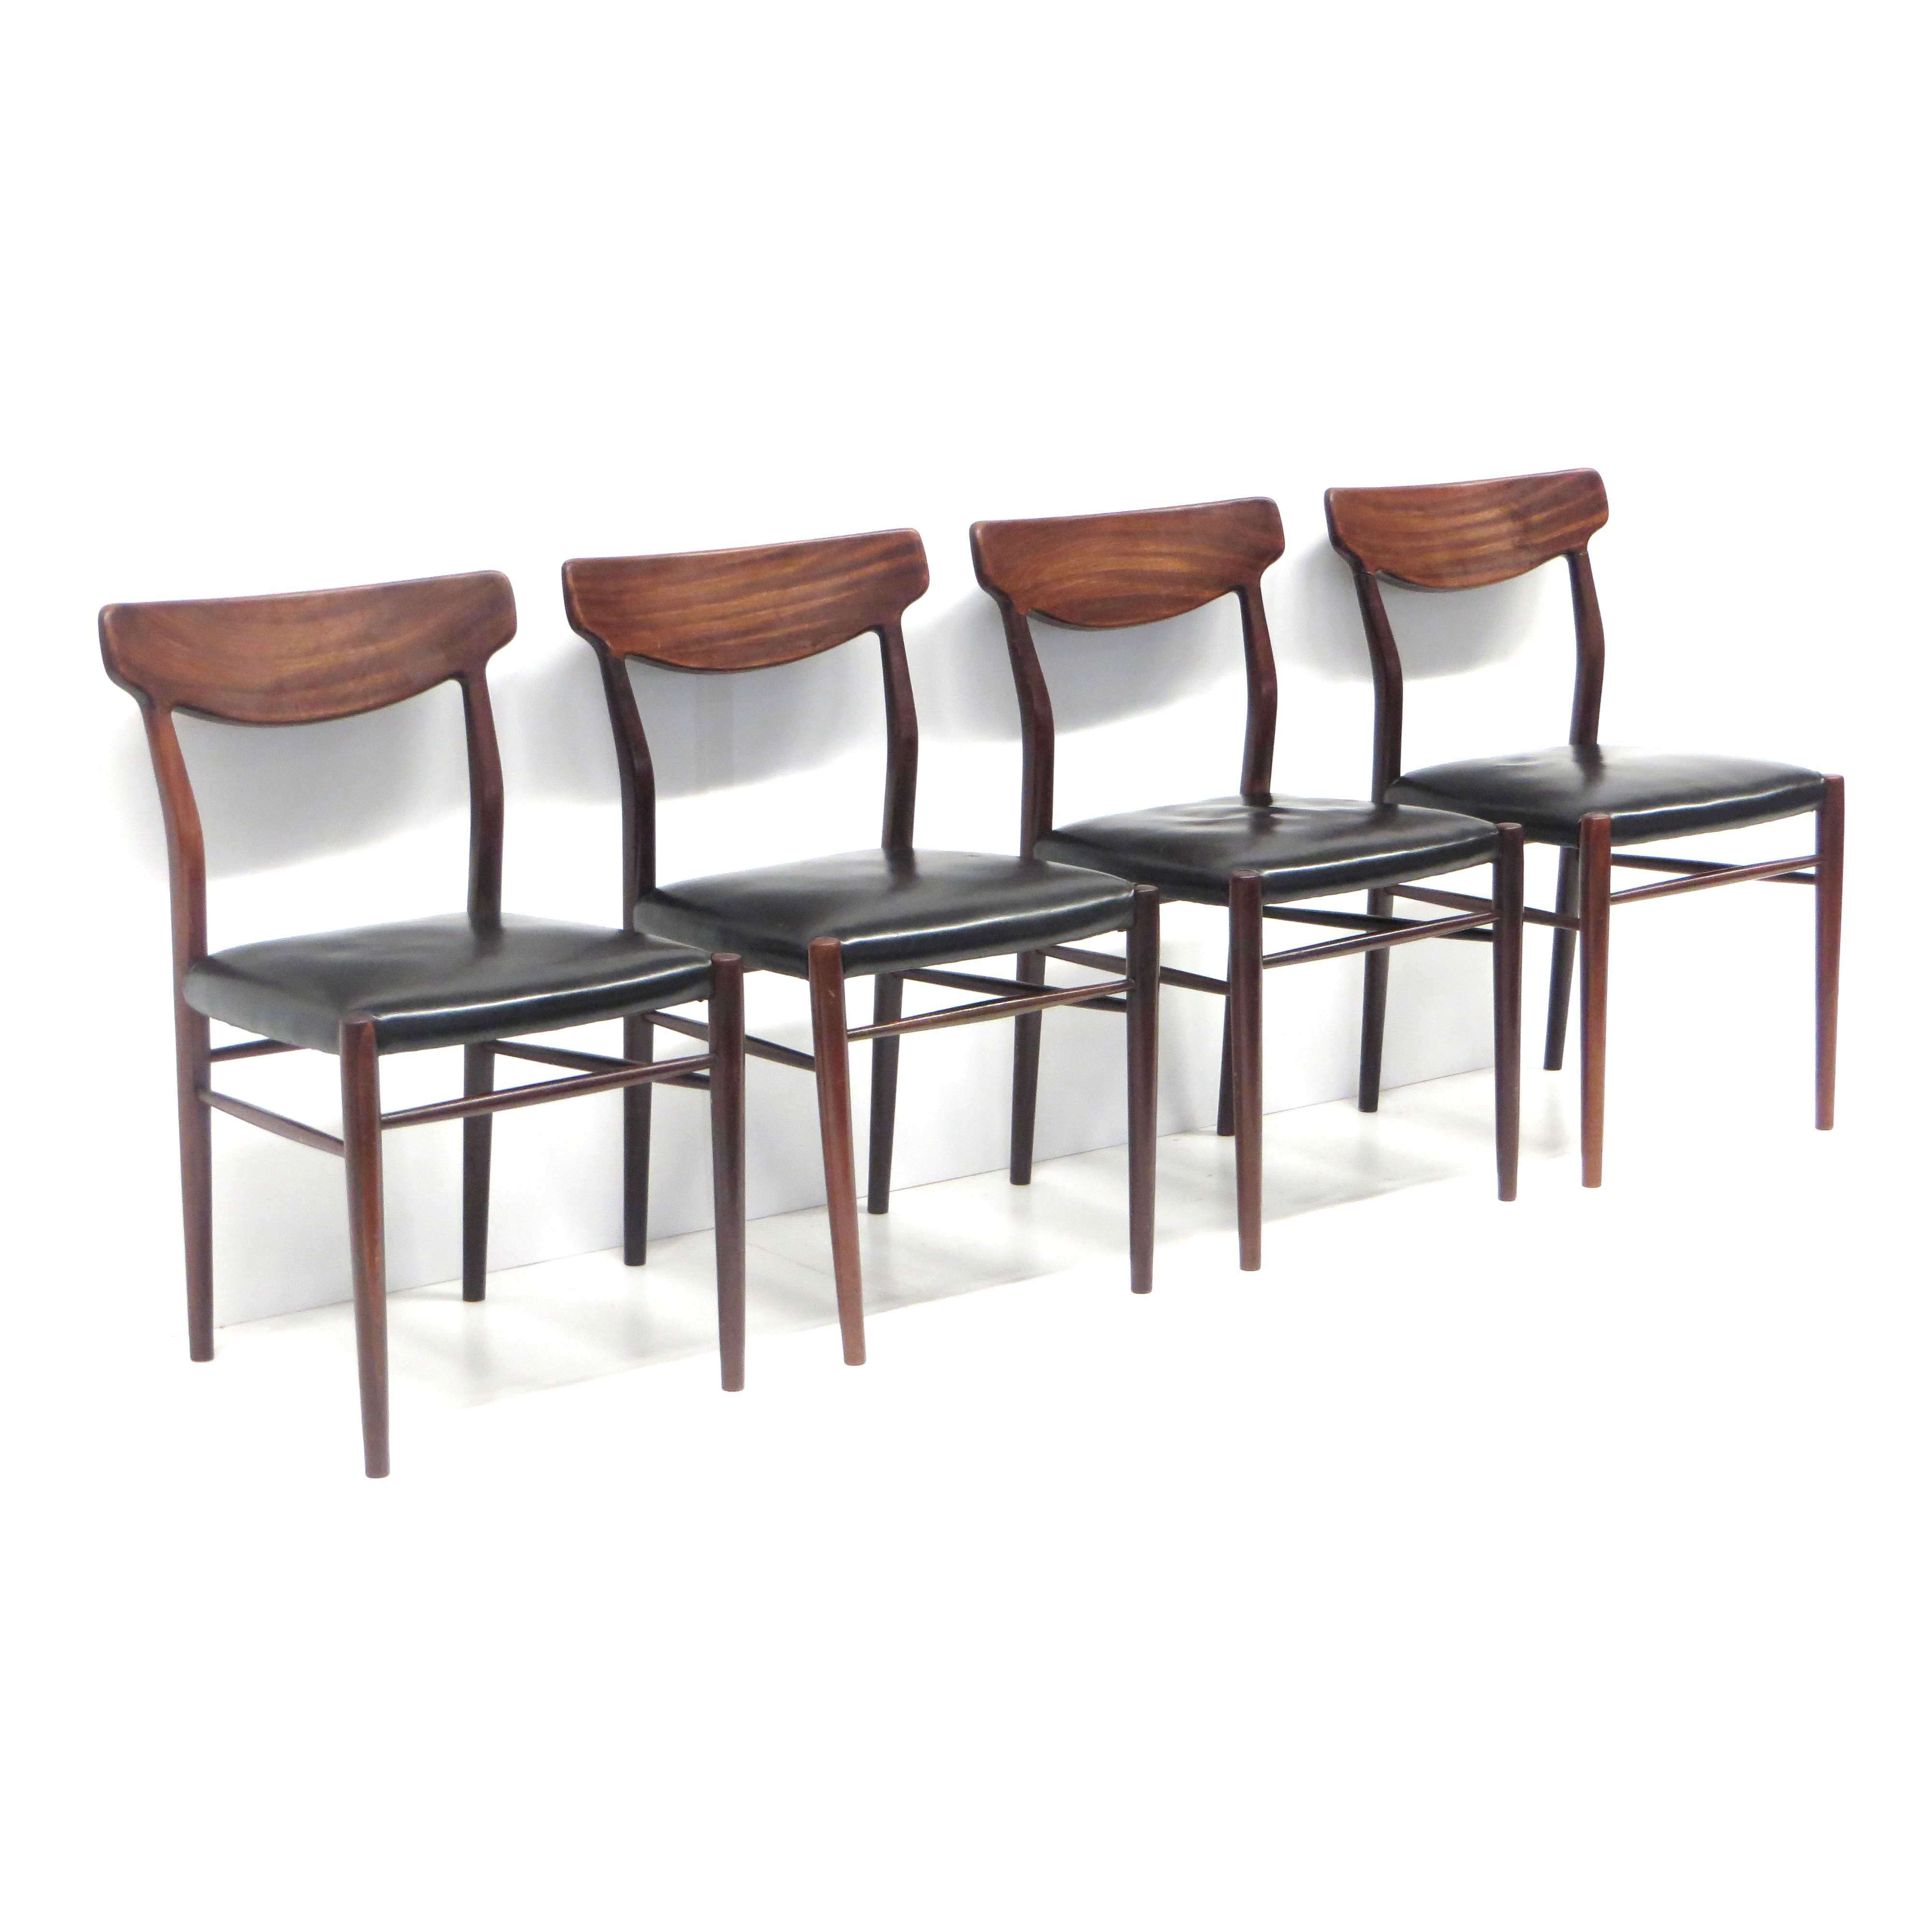 Set Of 4 Danish Designer Chairs From Harry Ostergaard 1960s 115003